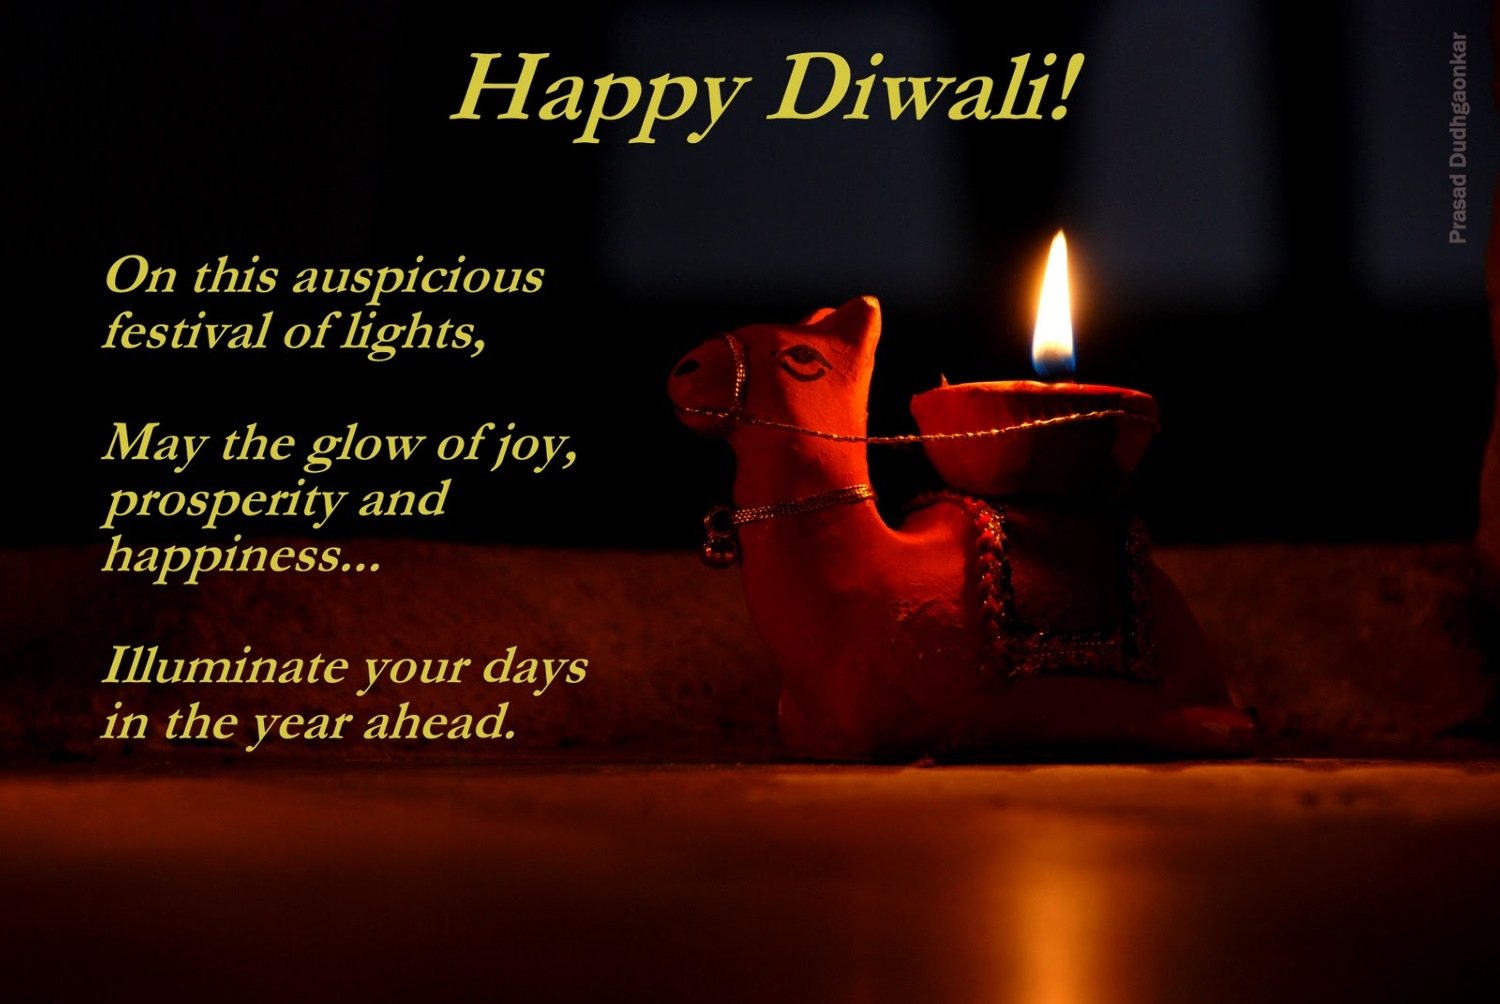 Happy diwali greetings wishes family friends 3d diwali 2018 happy diwali greetings wishes family friends 3d diwali 2018 wallpapers quotes status dp tips wishes m4hsunfo